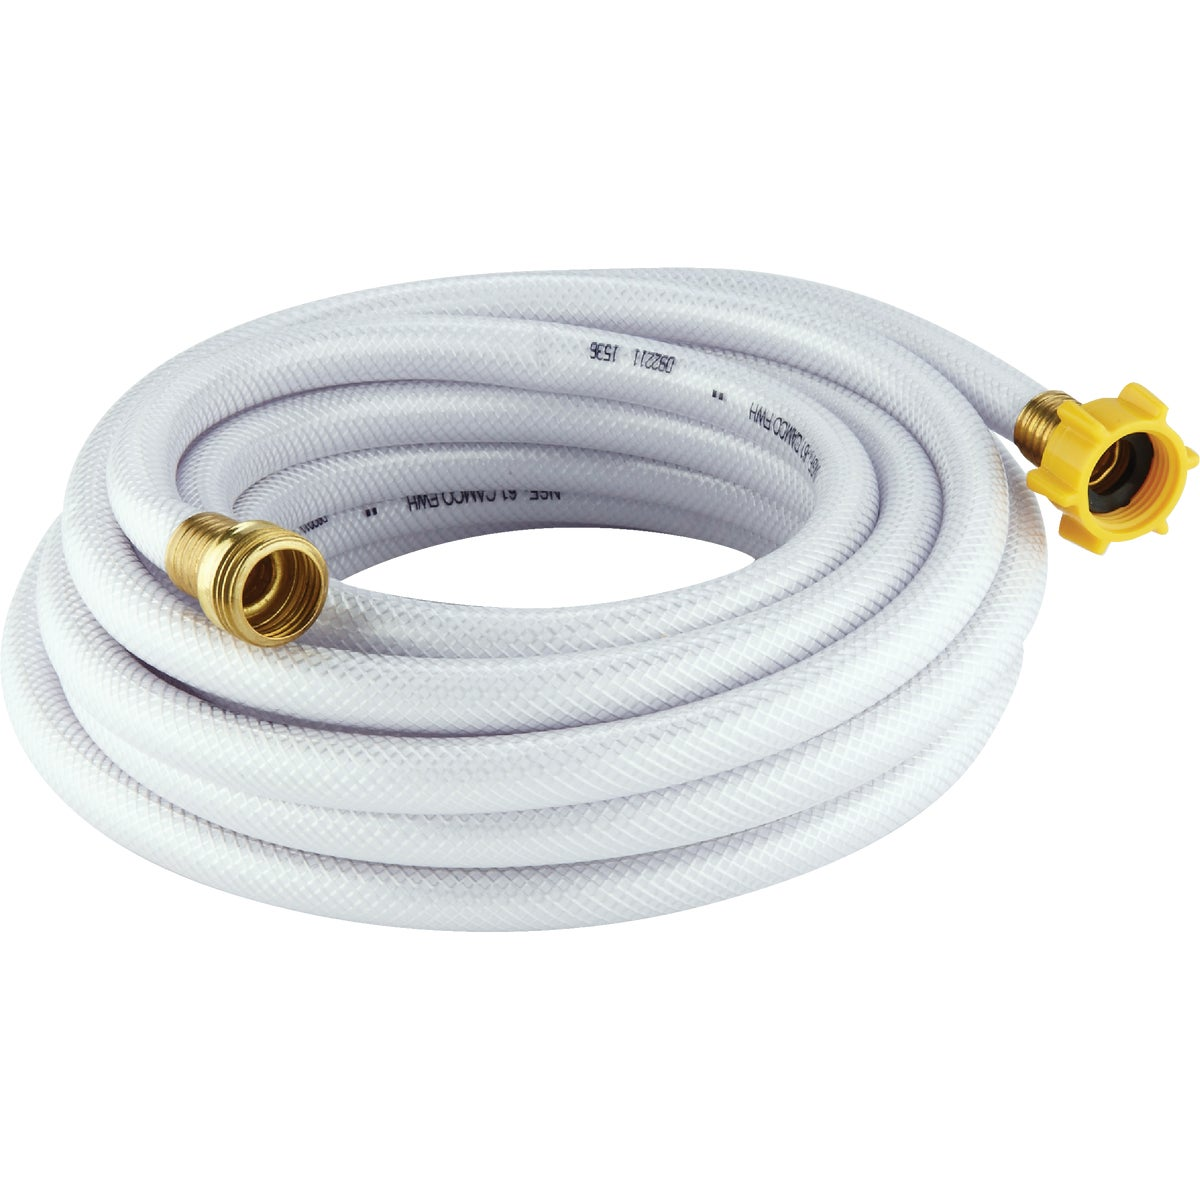 25' FRESH WATER HOSE - 22735 by Camco Mfg.